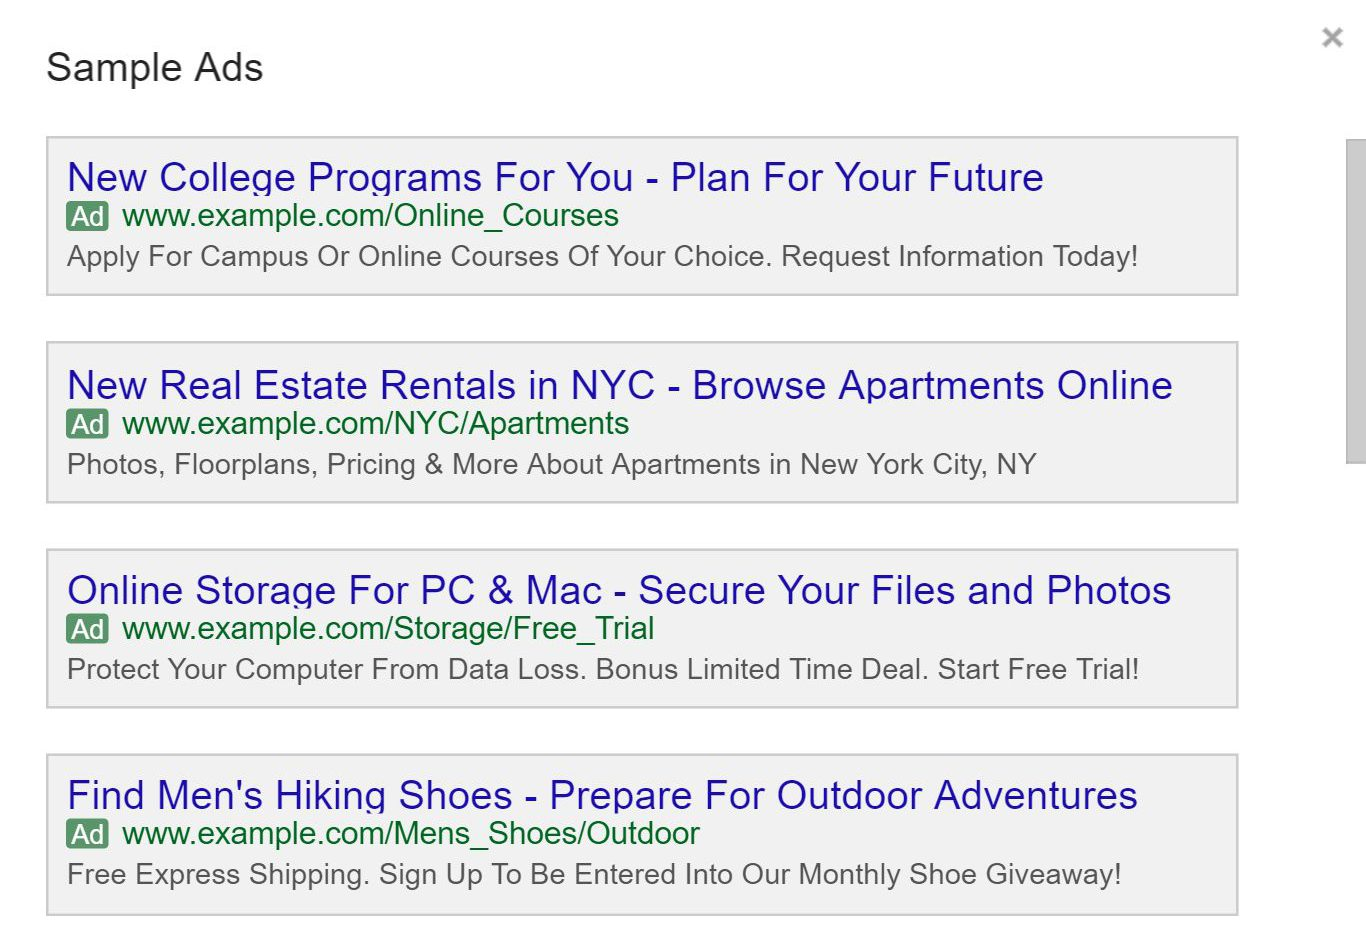 adwords-sample-ads-preview.